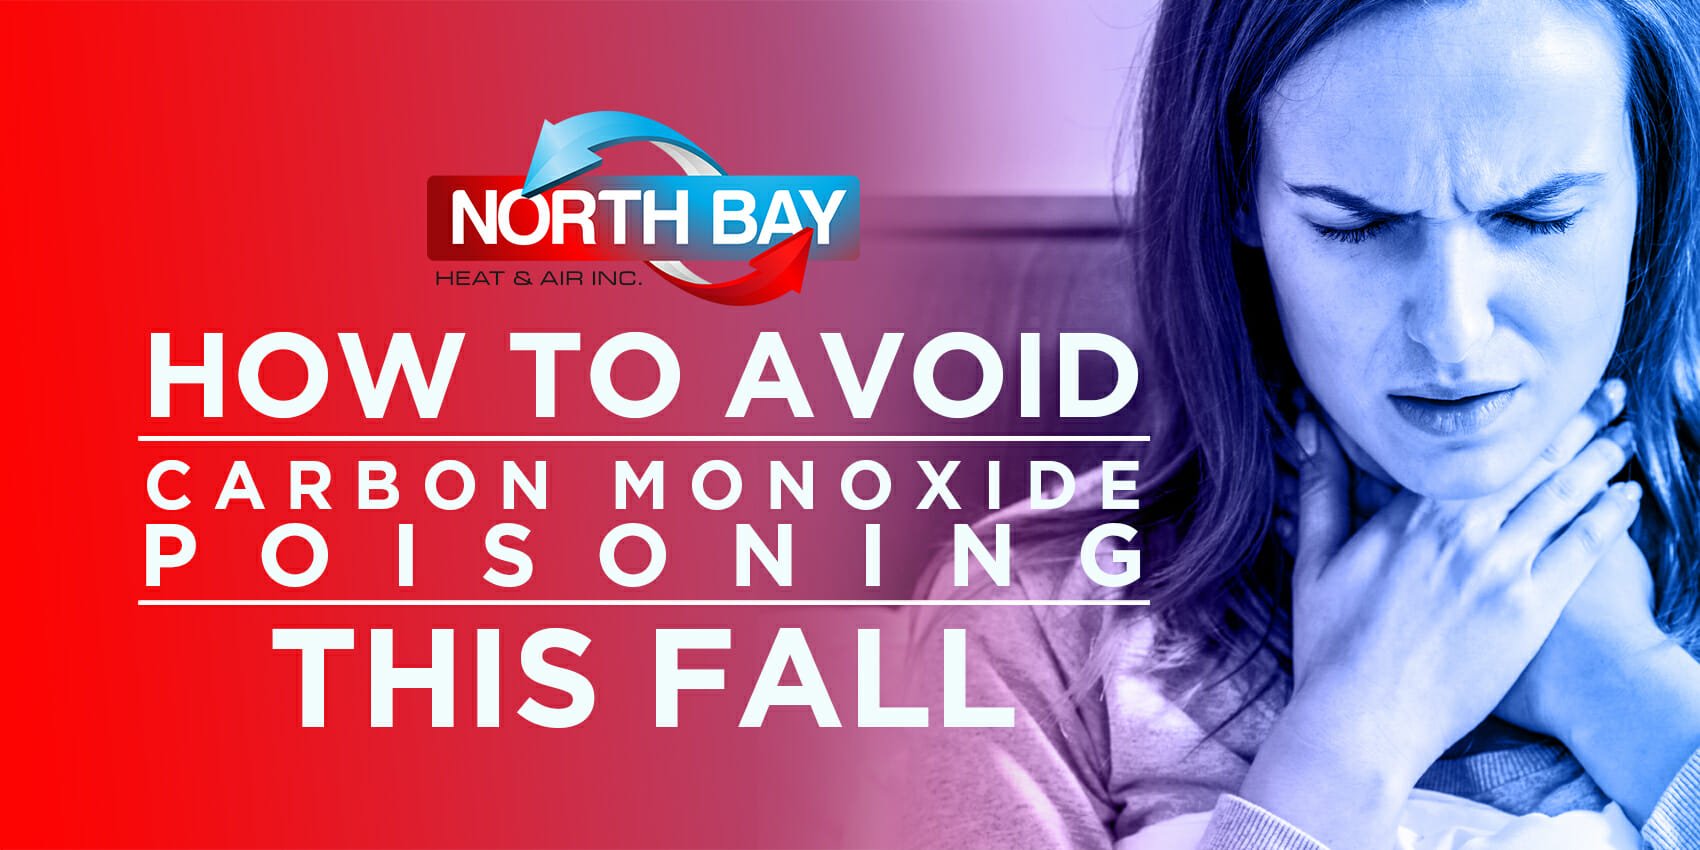 How to Avoid Carbon Monoxide Poisoning this Fall